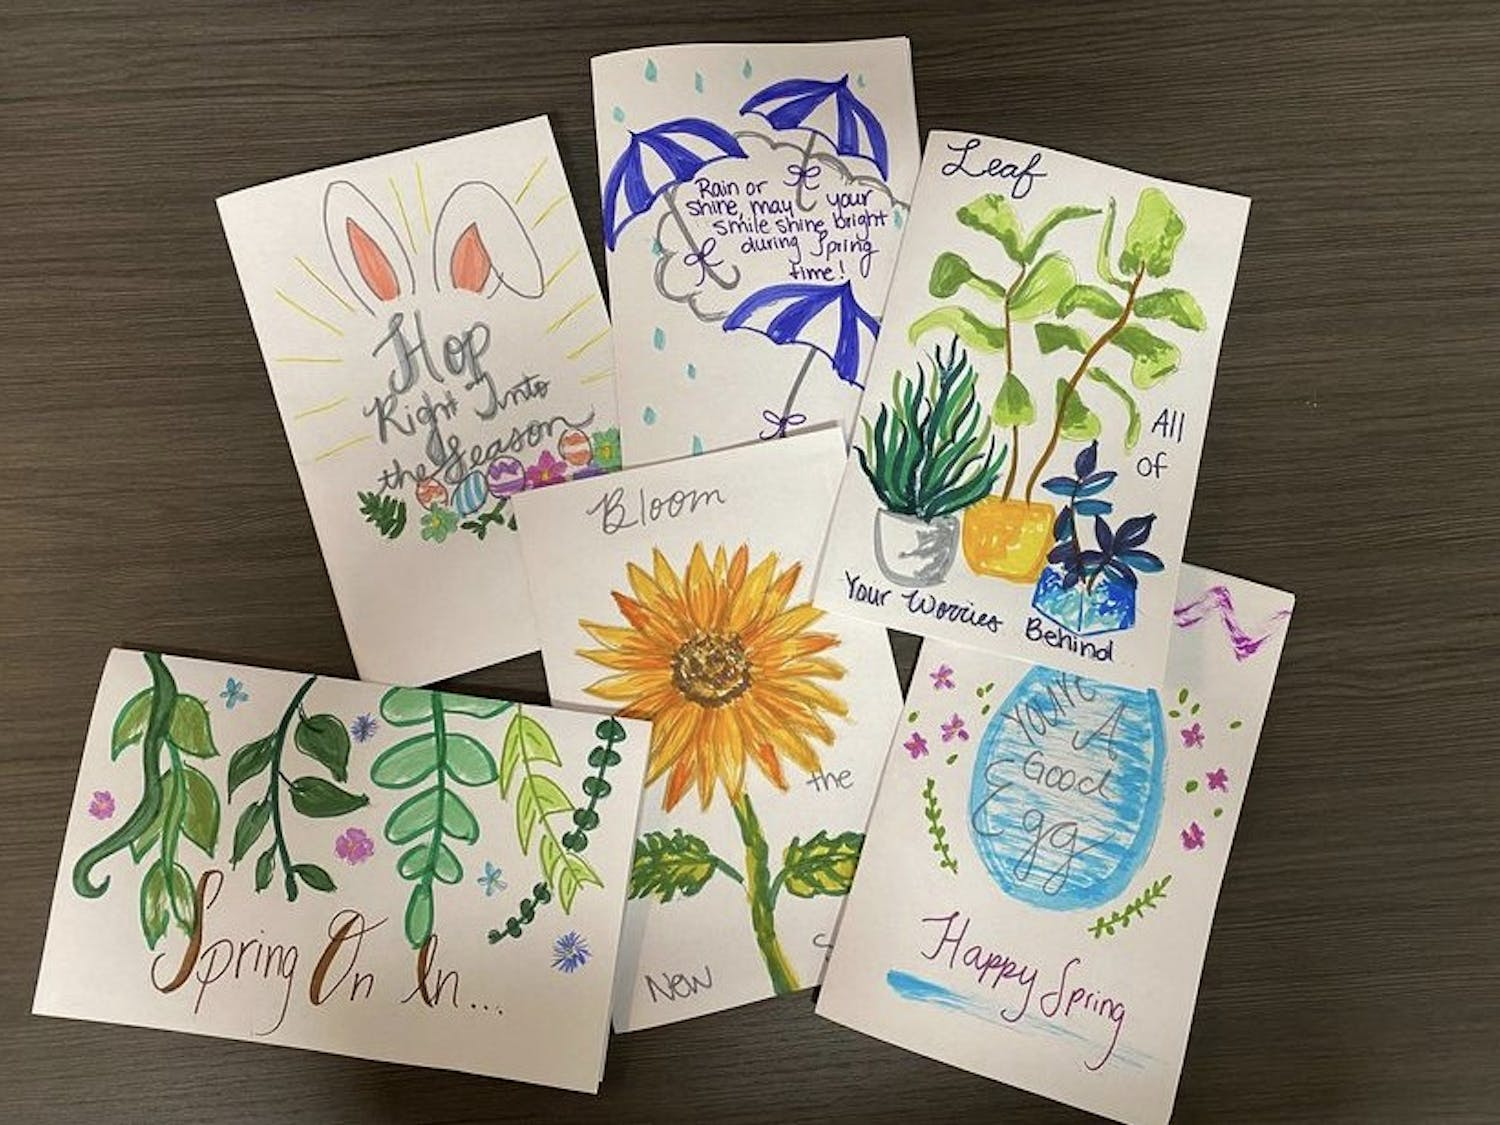 The UNC Heelgram club makes cards and sends them to people with disabilities. Photo courtesy of Reagan Fleeher.